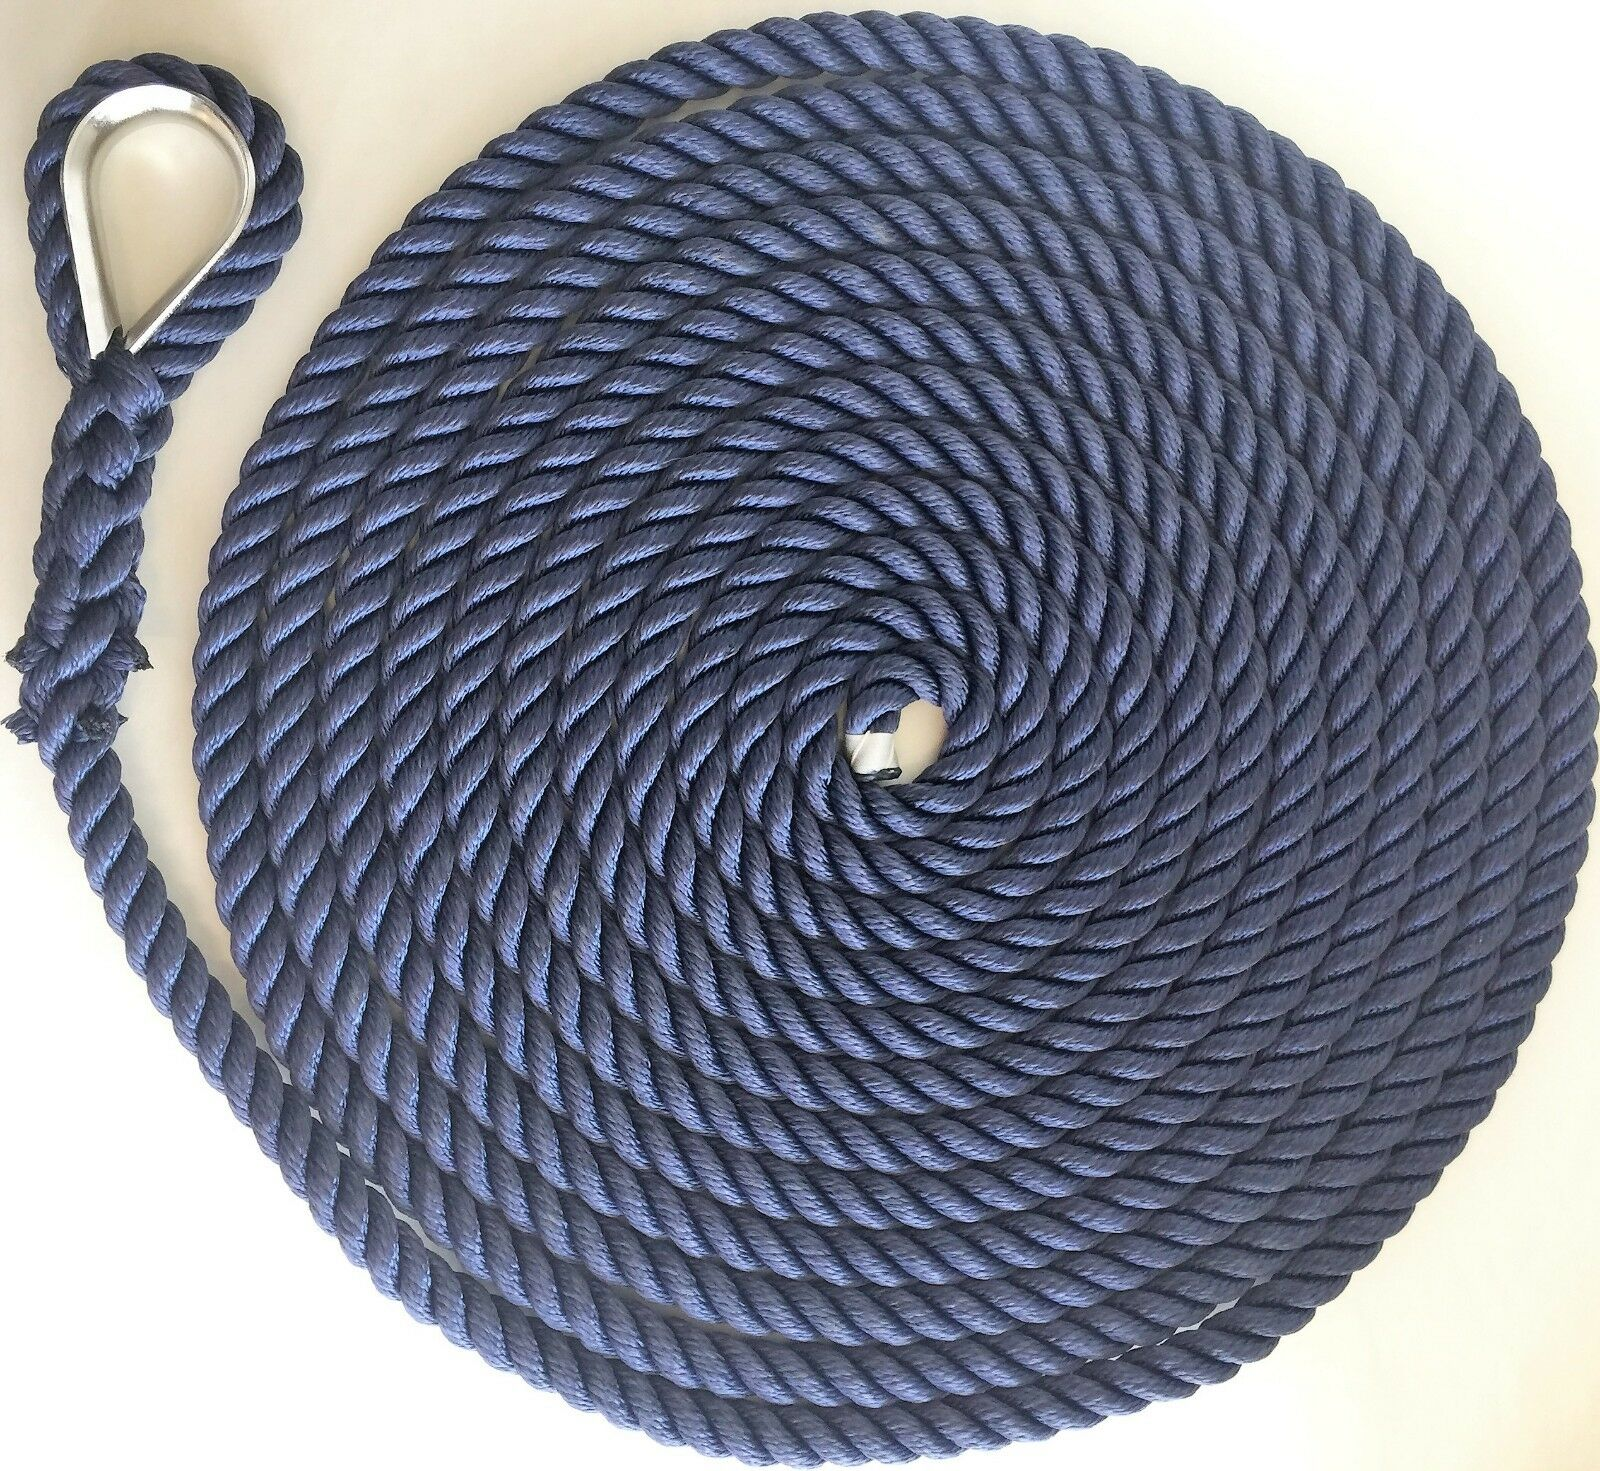 8mm.-28mm.Polyester 3 Strand Mooring Line Anchor Rope Stainless Thimble Spliced